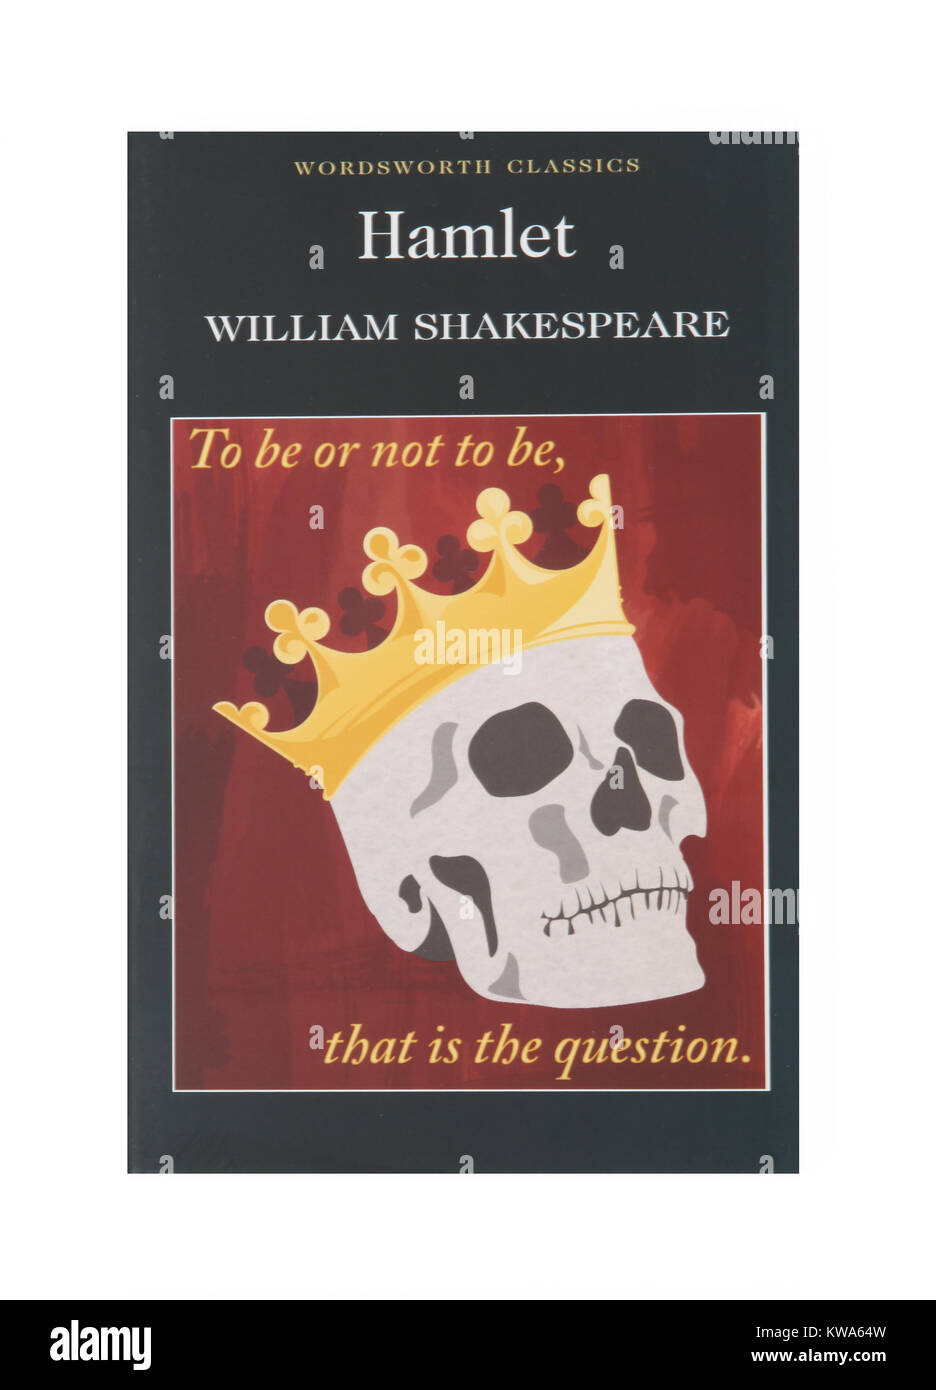 The book of the play Hamlet, by William Shakespeare - Stock Image